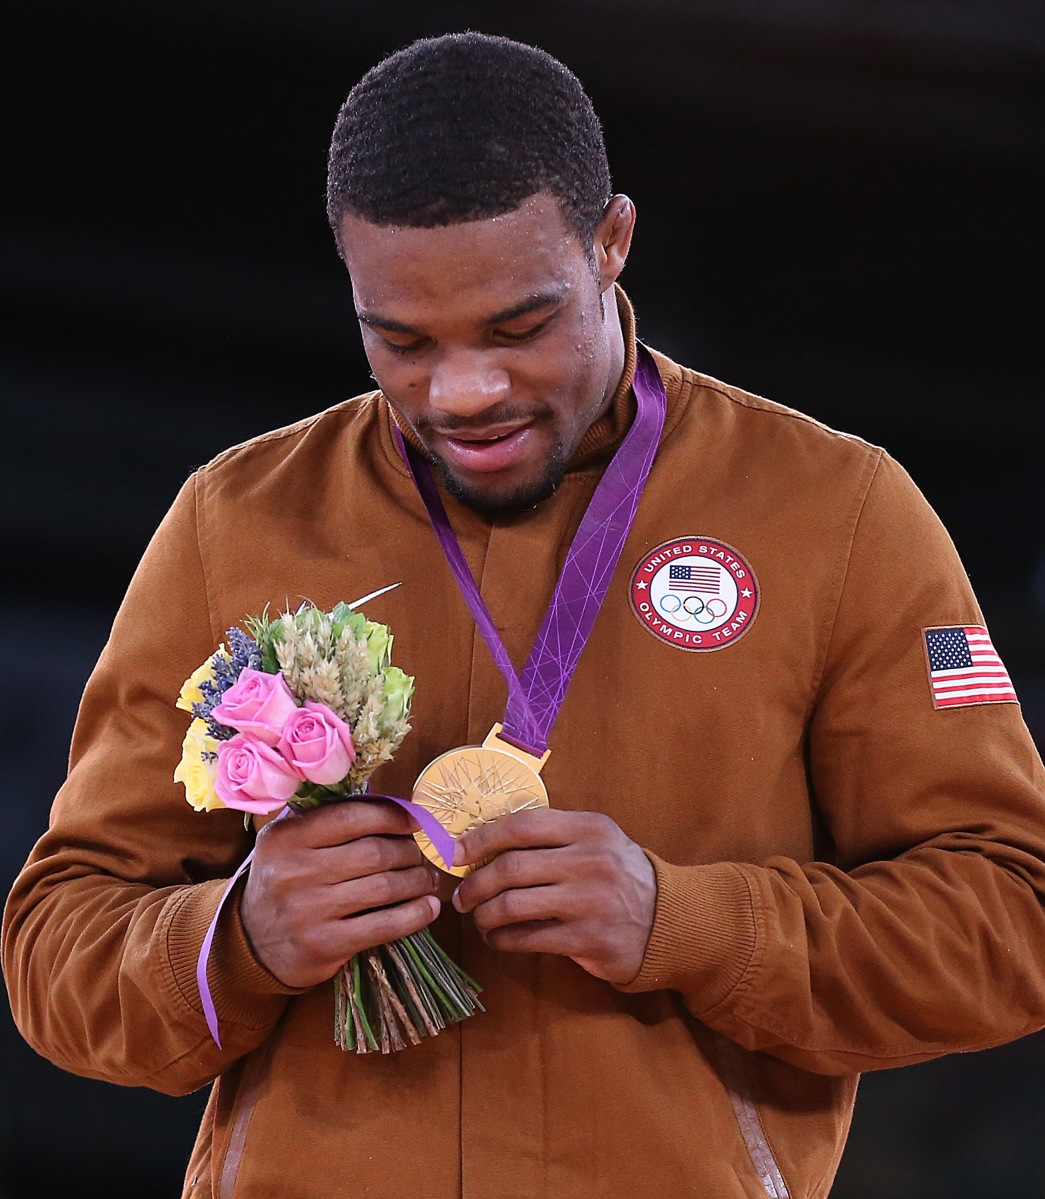 Jordan Burroughs makes a comeback